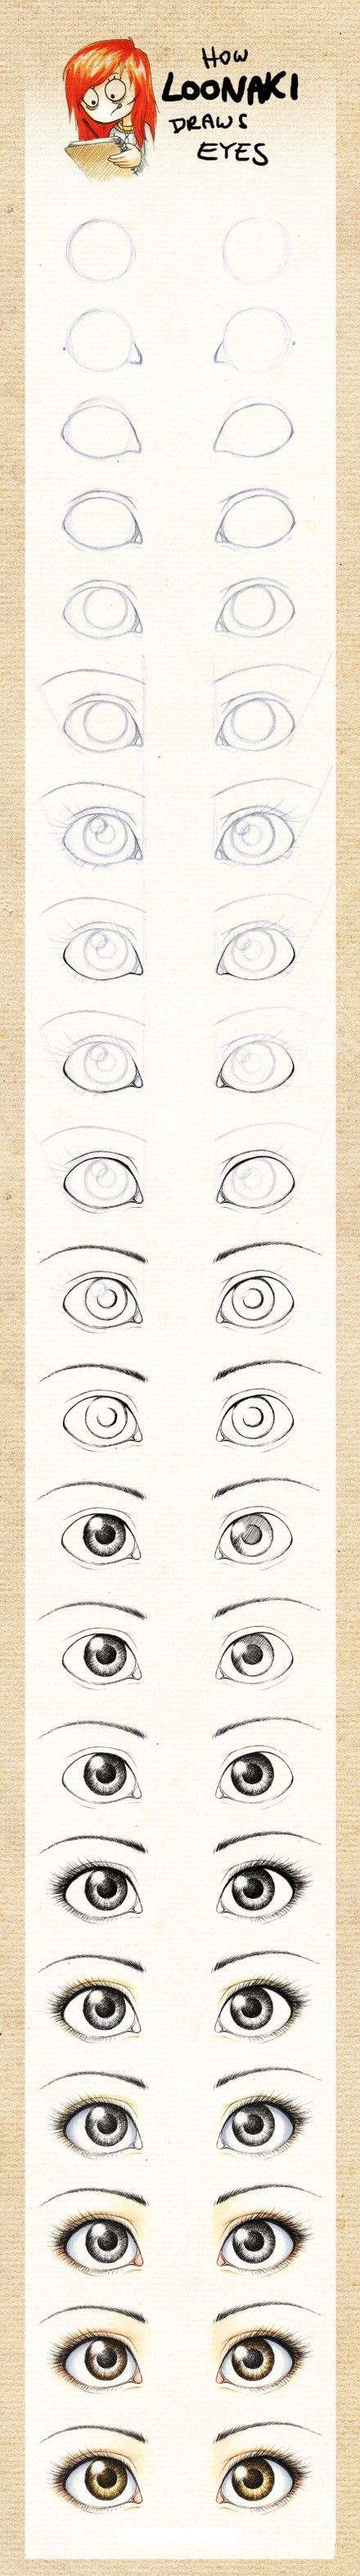 How to draw eyes...because after all these years, I still wish I could draw. And attempt it weekly. #Fail